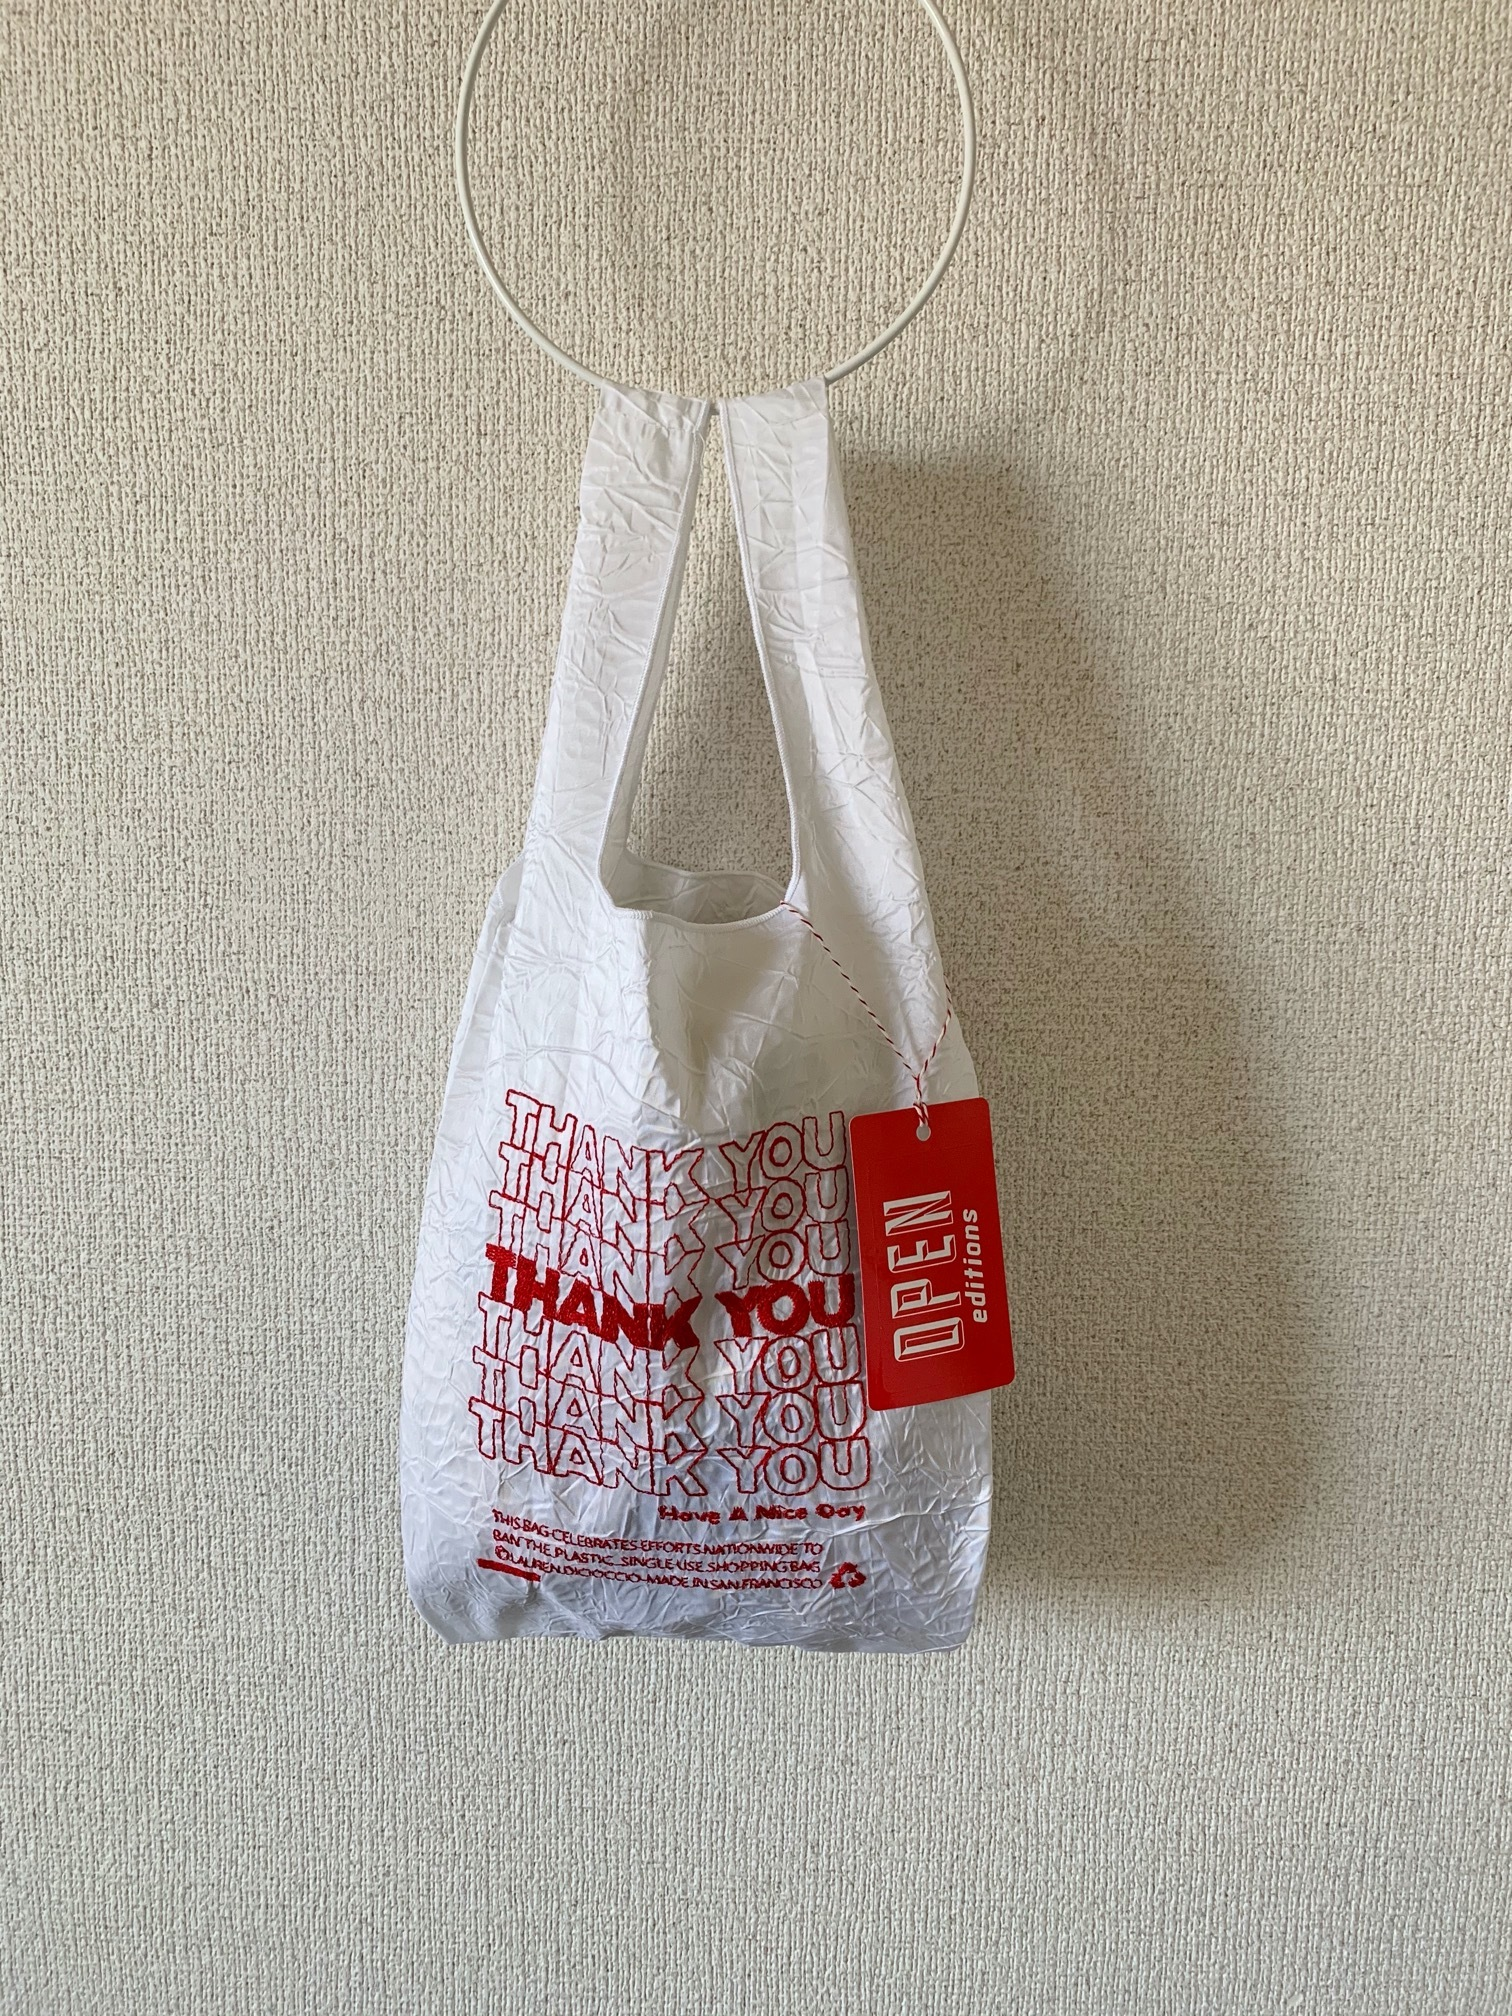 【OPEN EDITIONS / 送料無料】THANK YOU MINI エコバッグ/ THANK YOU Red